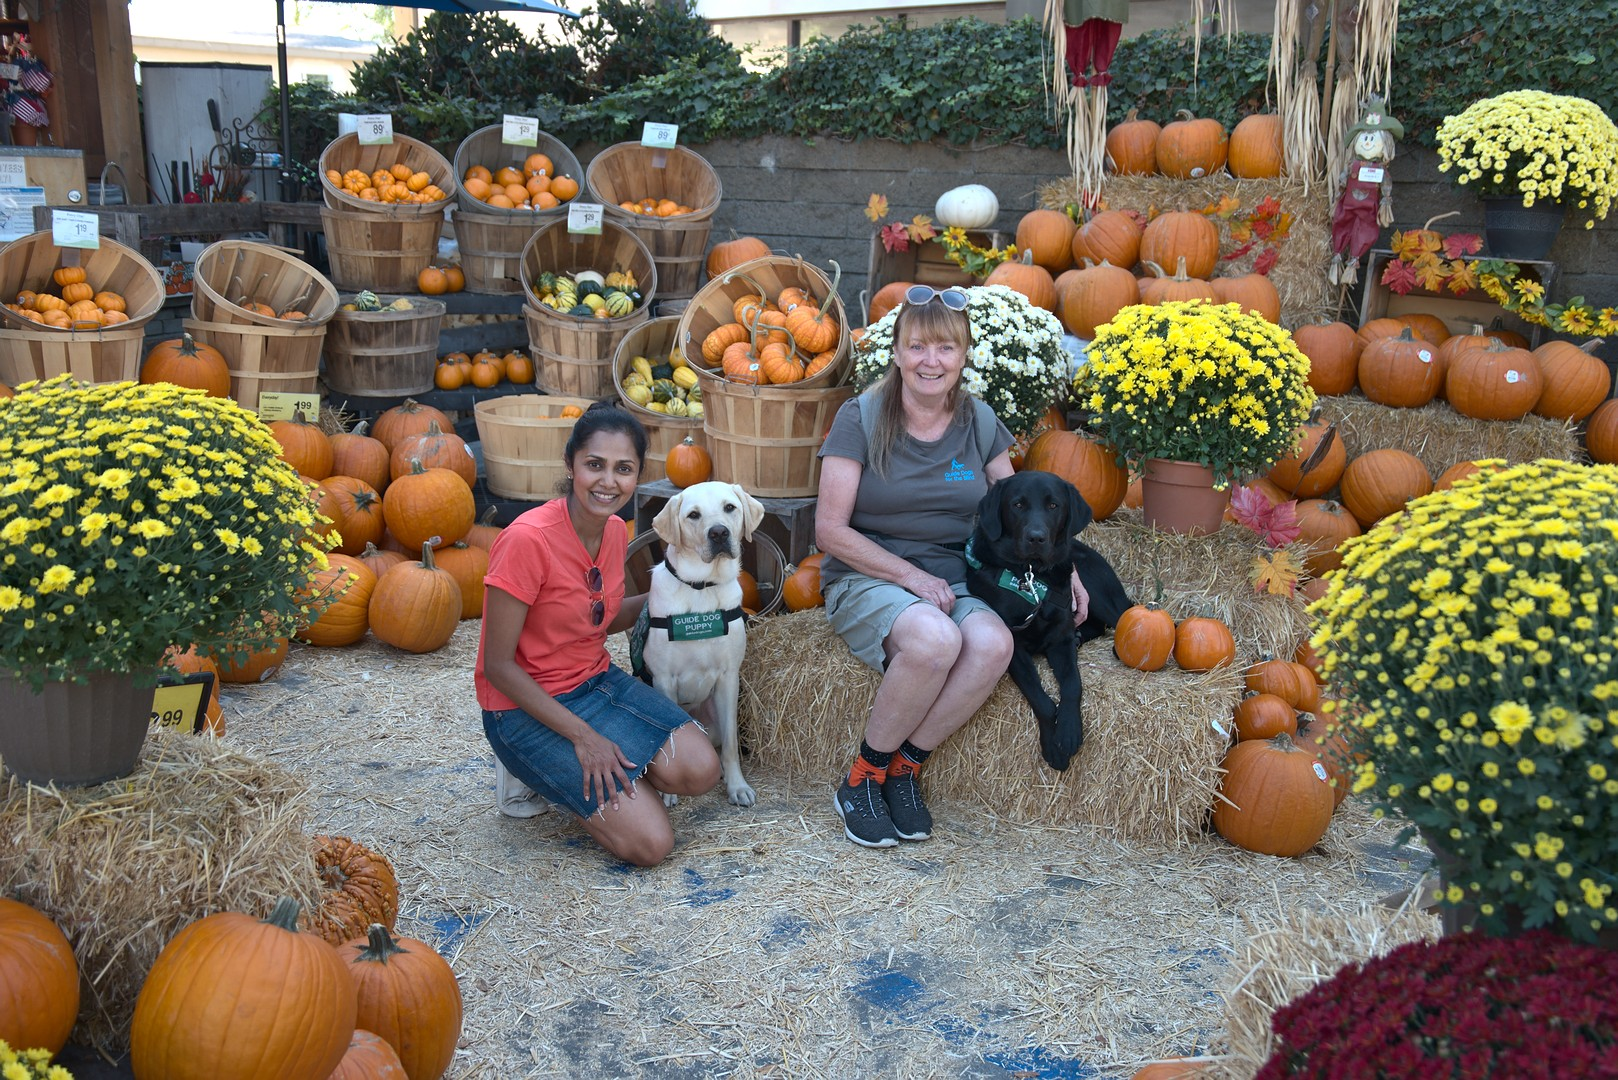 Daya with Kazuki, Brenda with Macklin, at the Pumpkin Patch